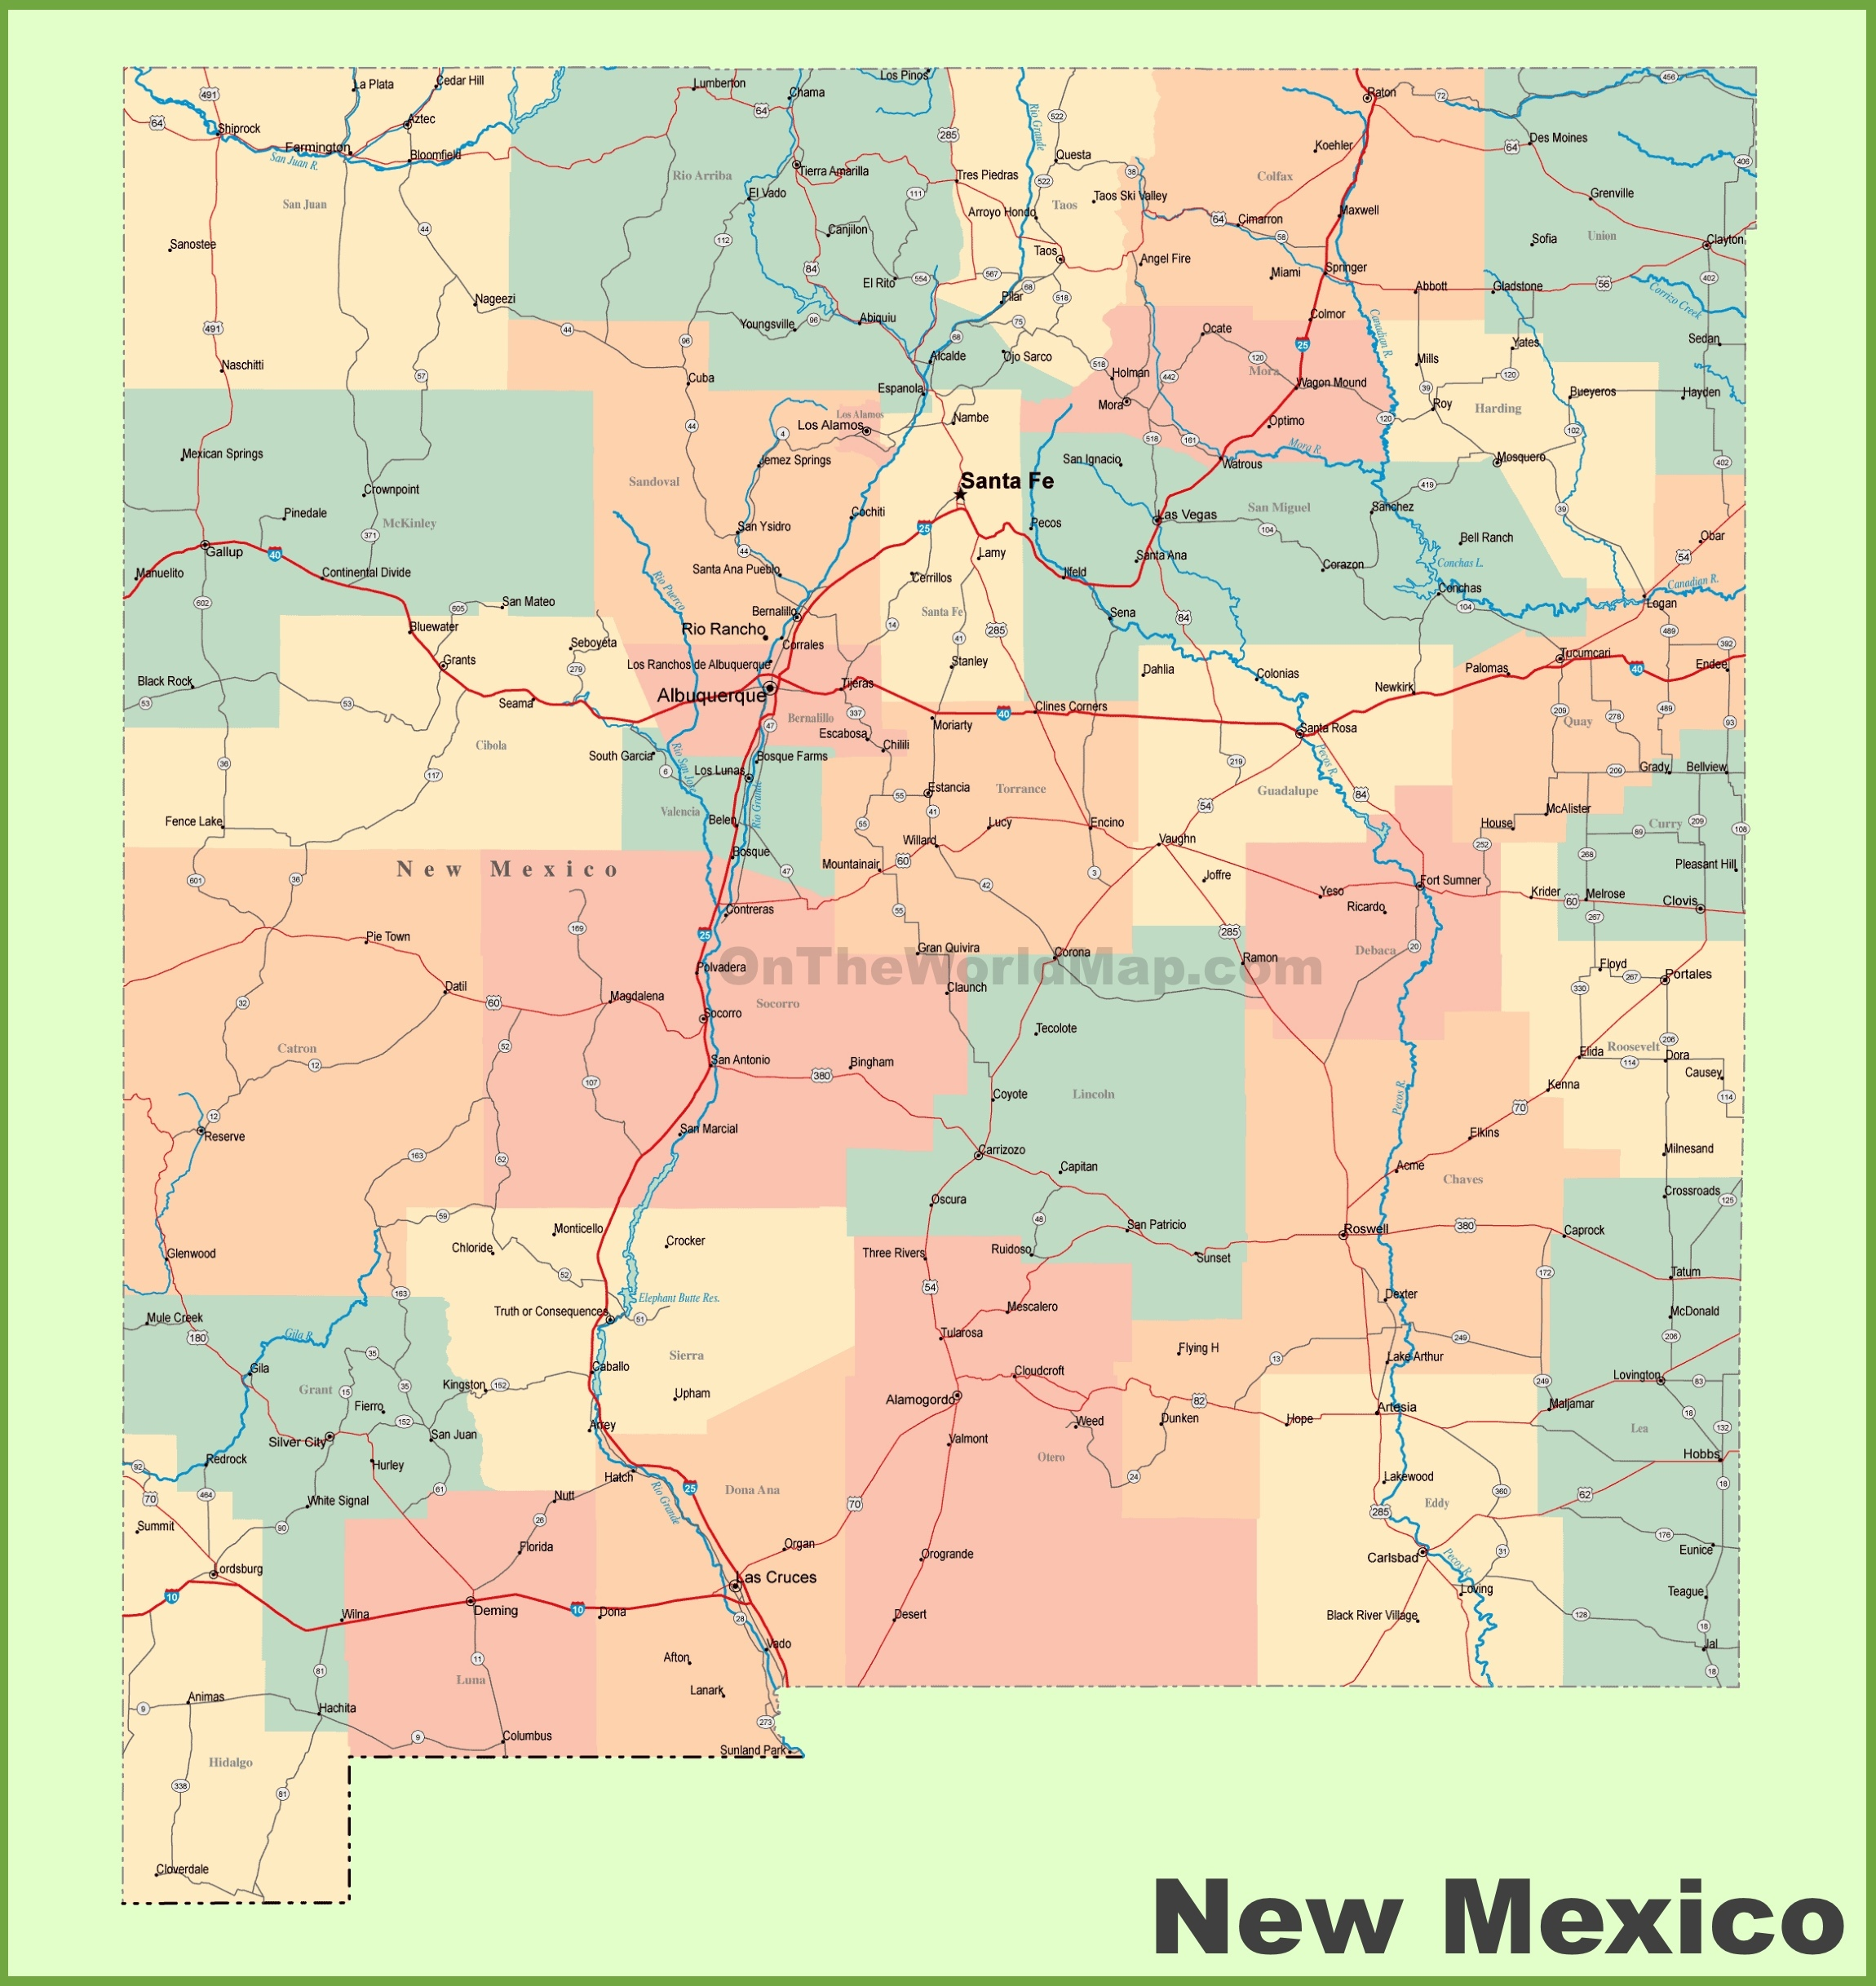 road-map-of-new-mexico-with-cities Show Me A Map Of New Mexico State on show me a map of new york, show me a map of new england, ma new mexico, pitchers of the map of new mexico, large map of new mexico, online map of new mexico, show state of new mexico on map, mapquest hobbs new mexico, atlas map of new mexico, show me a map texas,